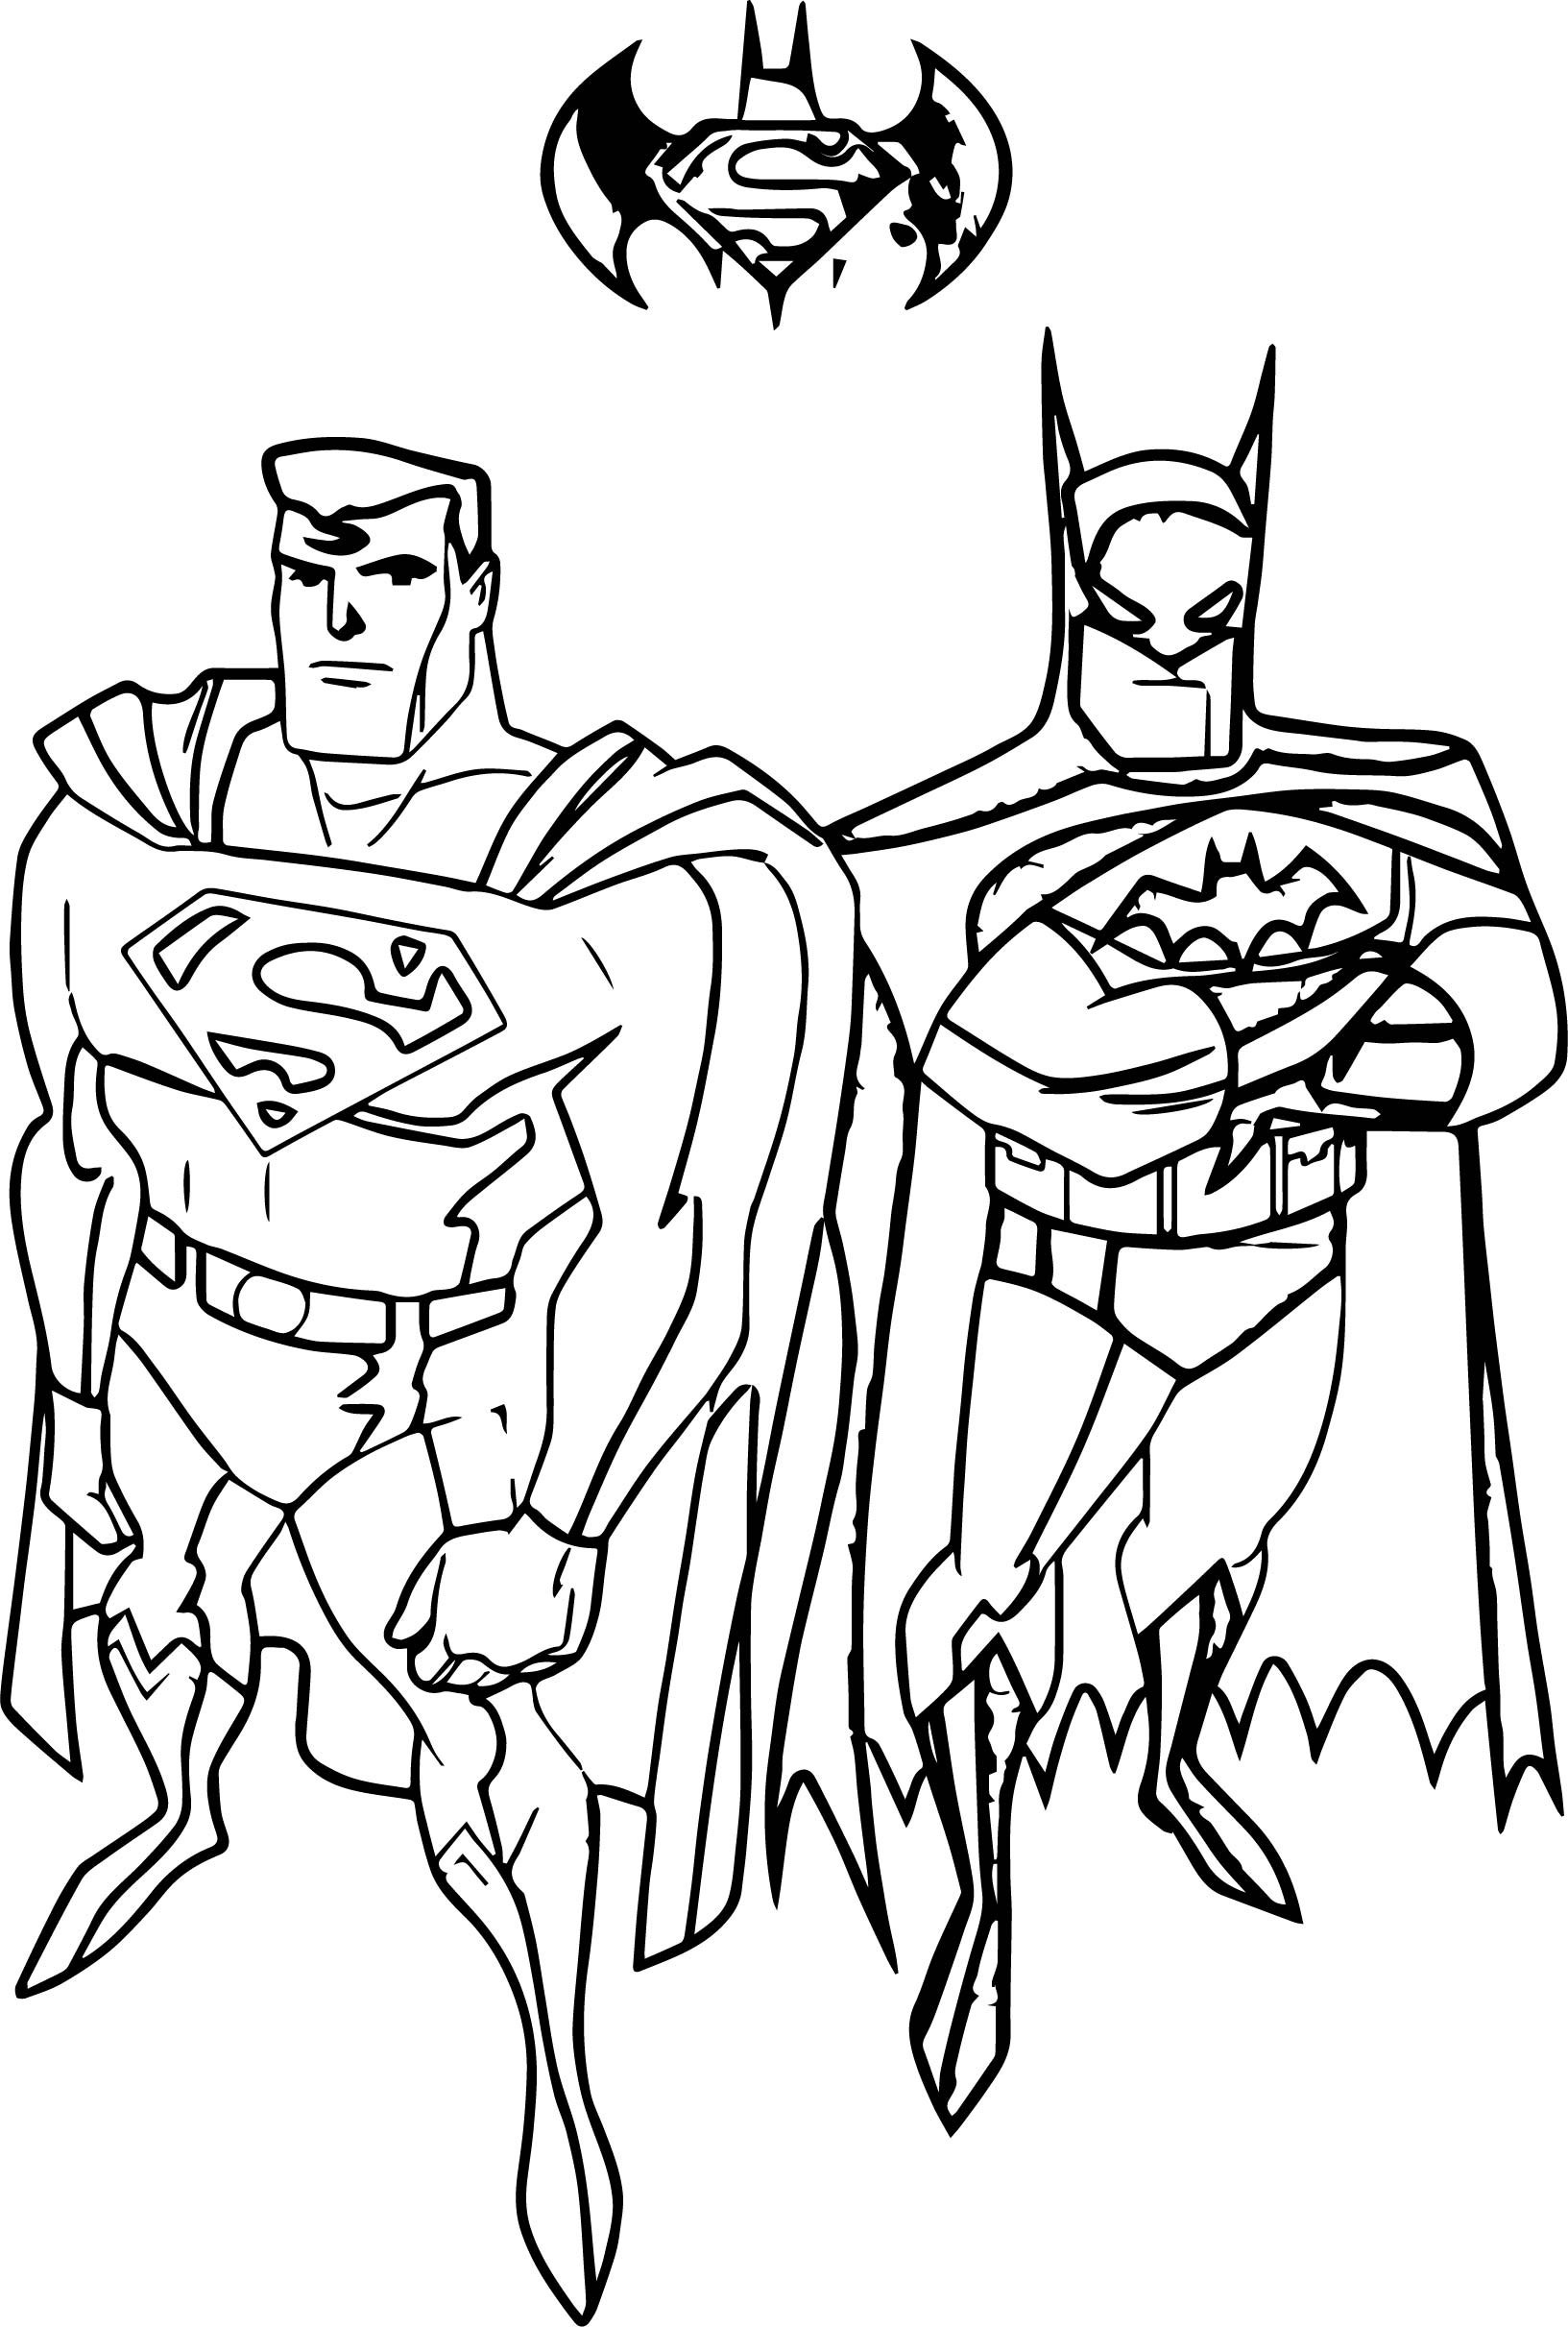 superman coloring pages free superman coloring pages break printable free superman pages free coloring